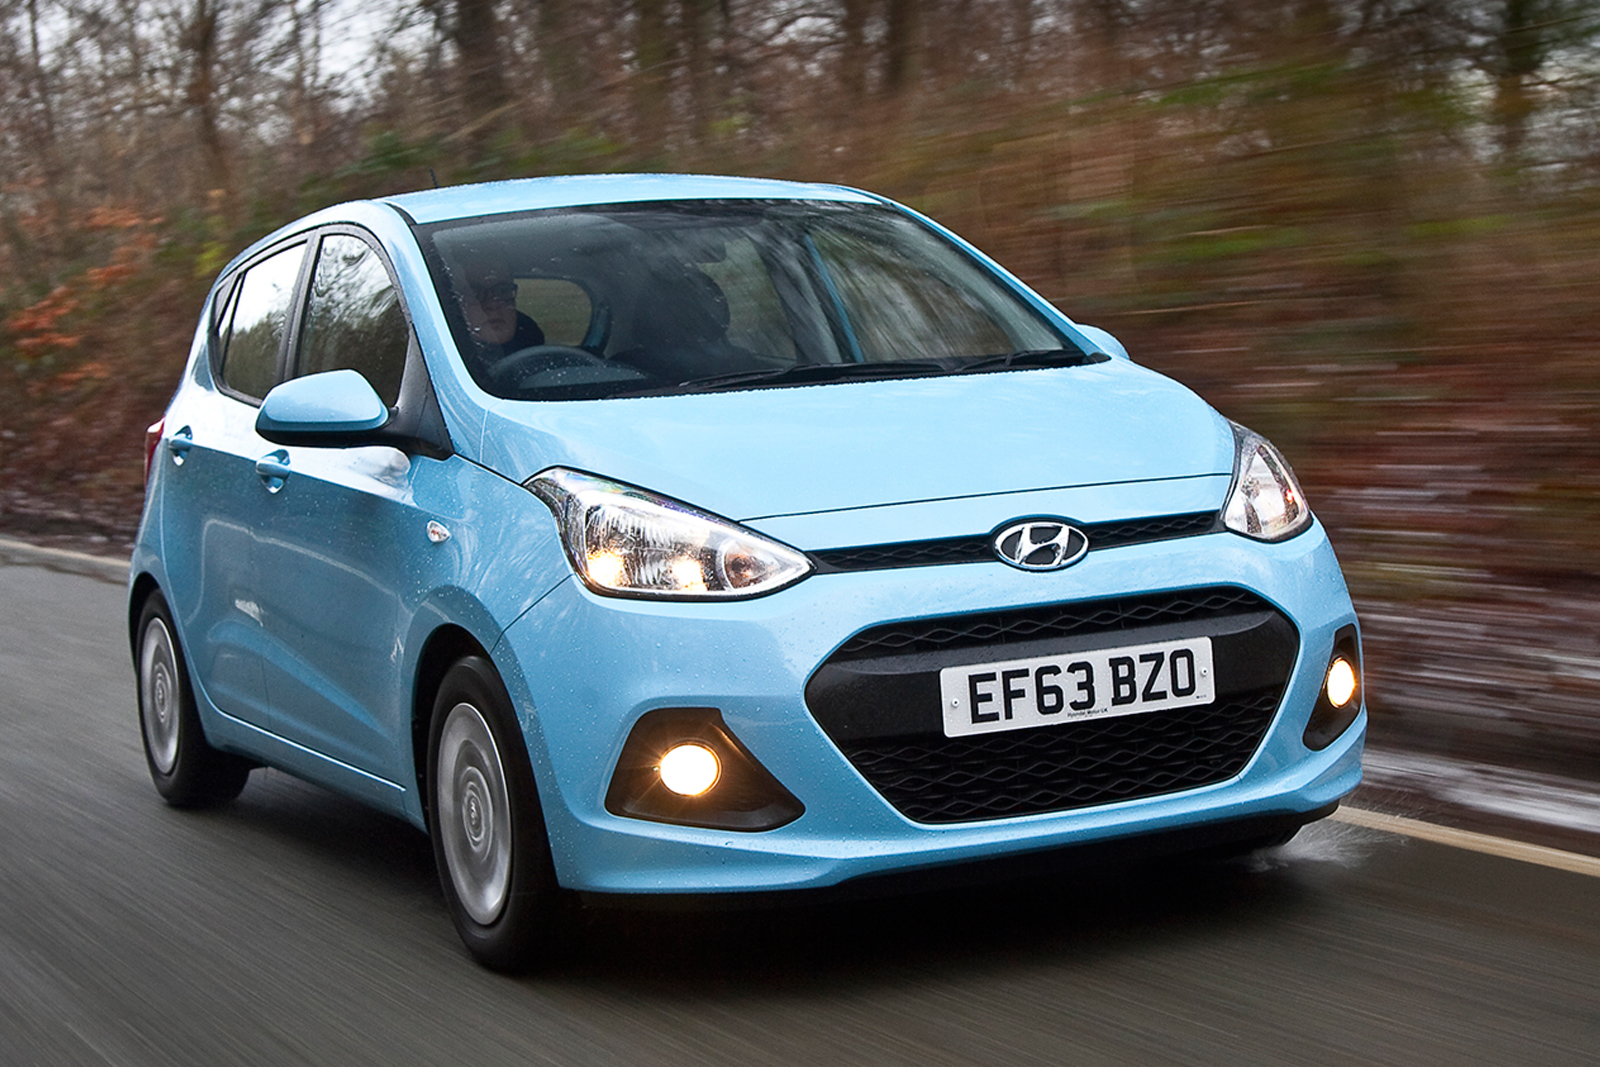 2014 hyundai i10 se 1 0 66ps petrol manual first drive. Black Bedroom Furniture Sets. Home Design Ideas